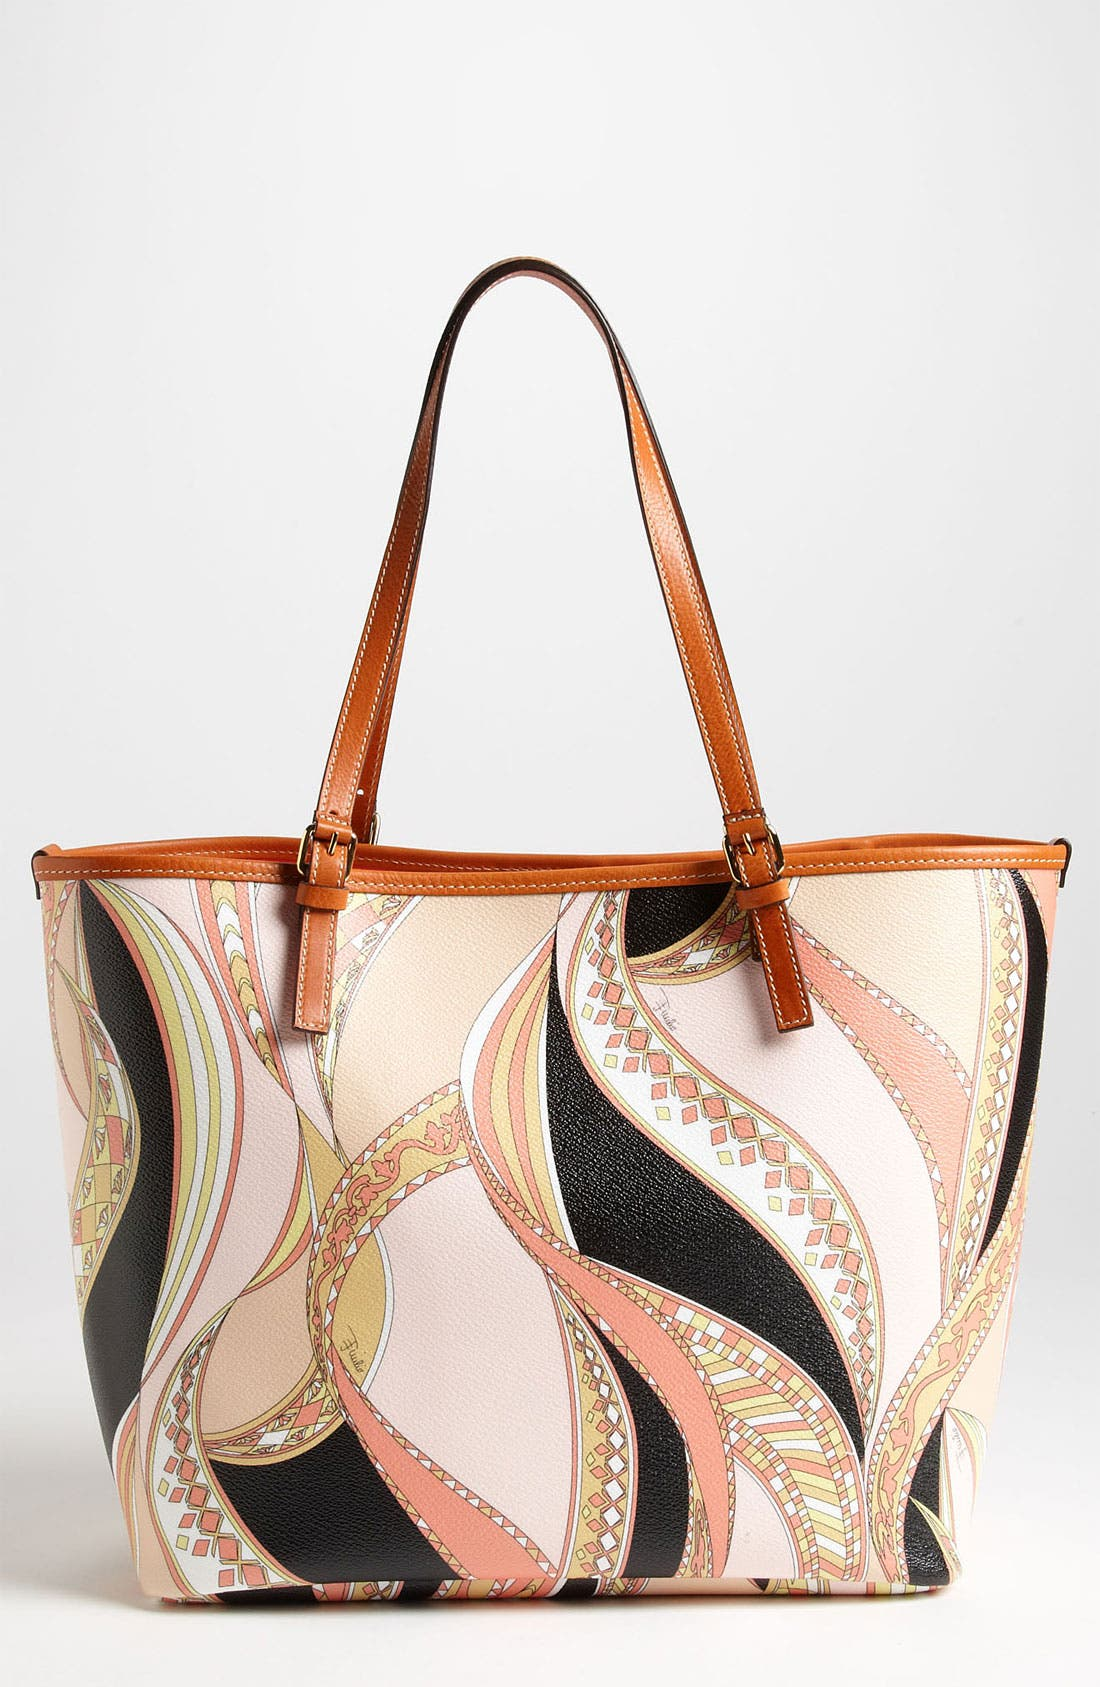 Alternate Image 1 Selected - Emilio Pucci 'Medium' Shopper